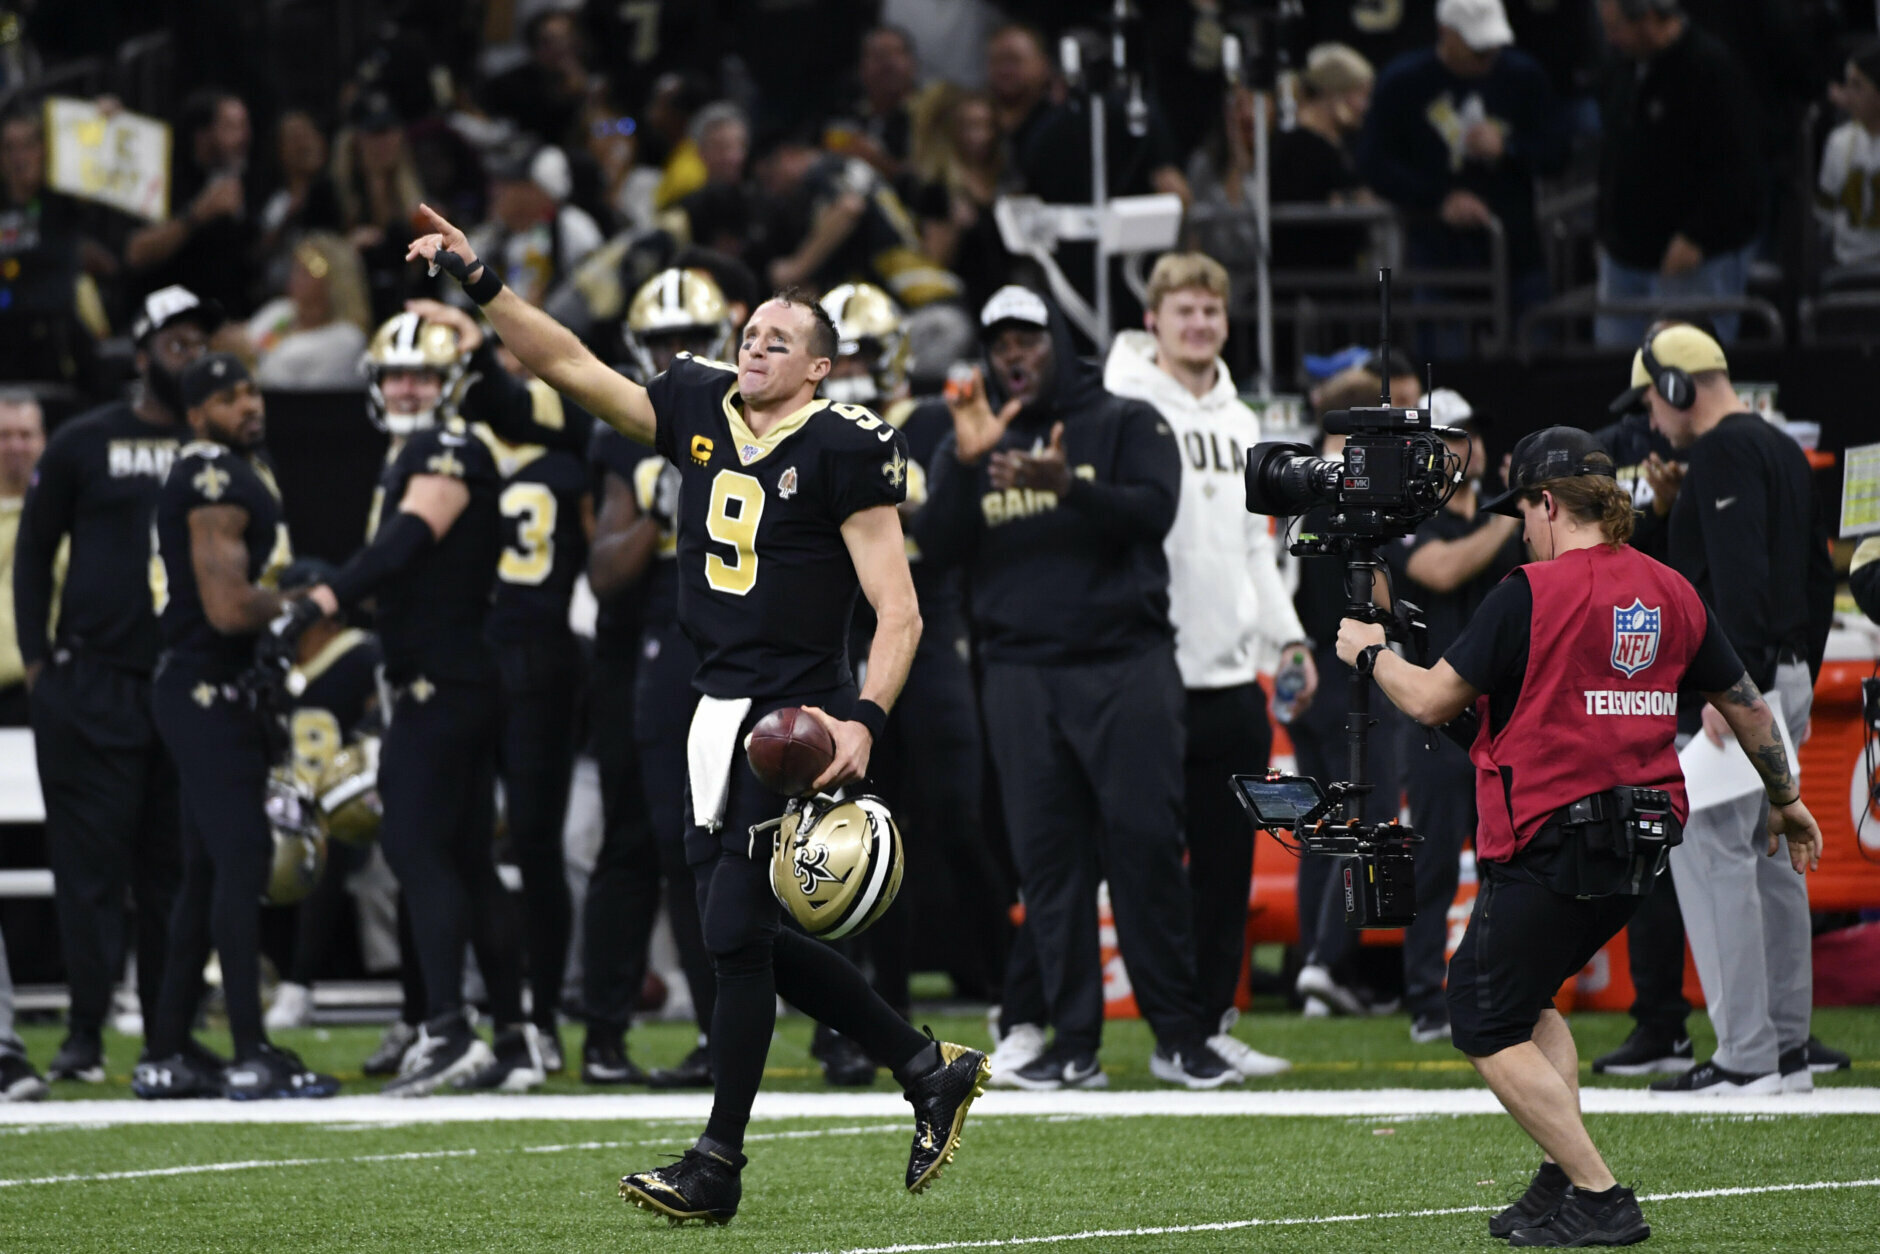 <p><b><i>Colts 7</i></b><br /> <b><i>Saints 34</i></b></p> <p>Who loves Monday nights more than Drew Brees? A year after setting the all-time passing yardage record against the Redskins on MNF, Brees claimed the all-time touchdown mark and the single-game completion percentage record (96.7%). Unlike Tom Brady, Brees looks like he&#8217;s still got enough in the tank to carry New Orleans deep into the postseason.</p>